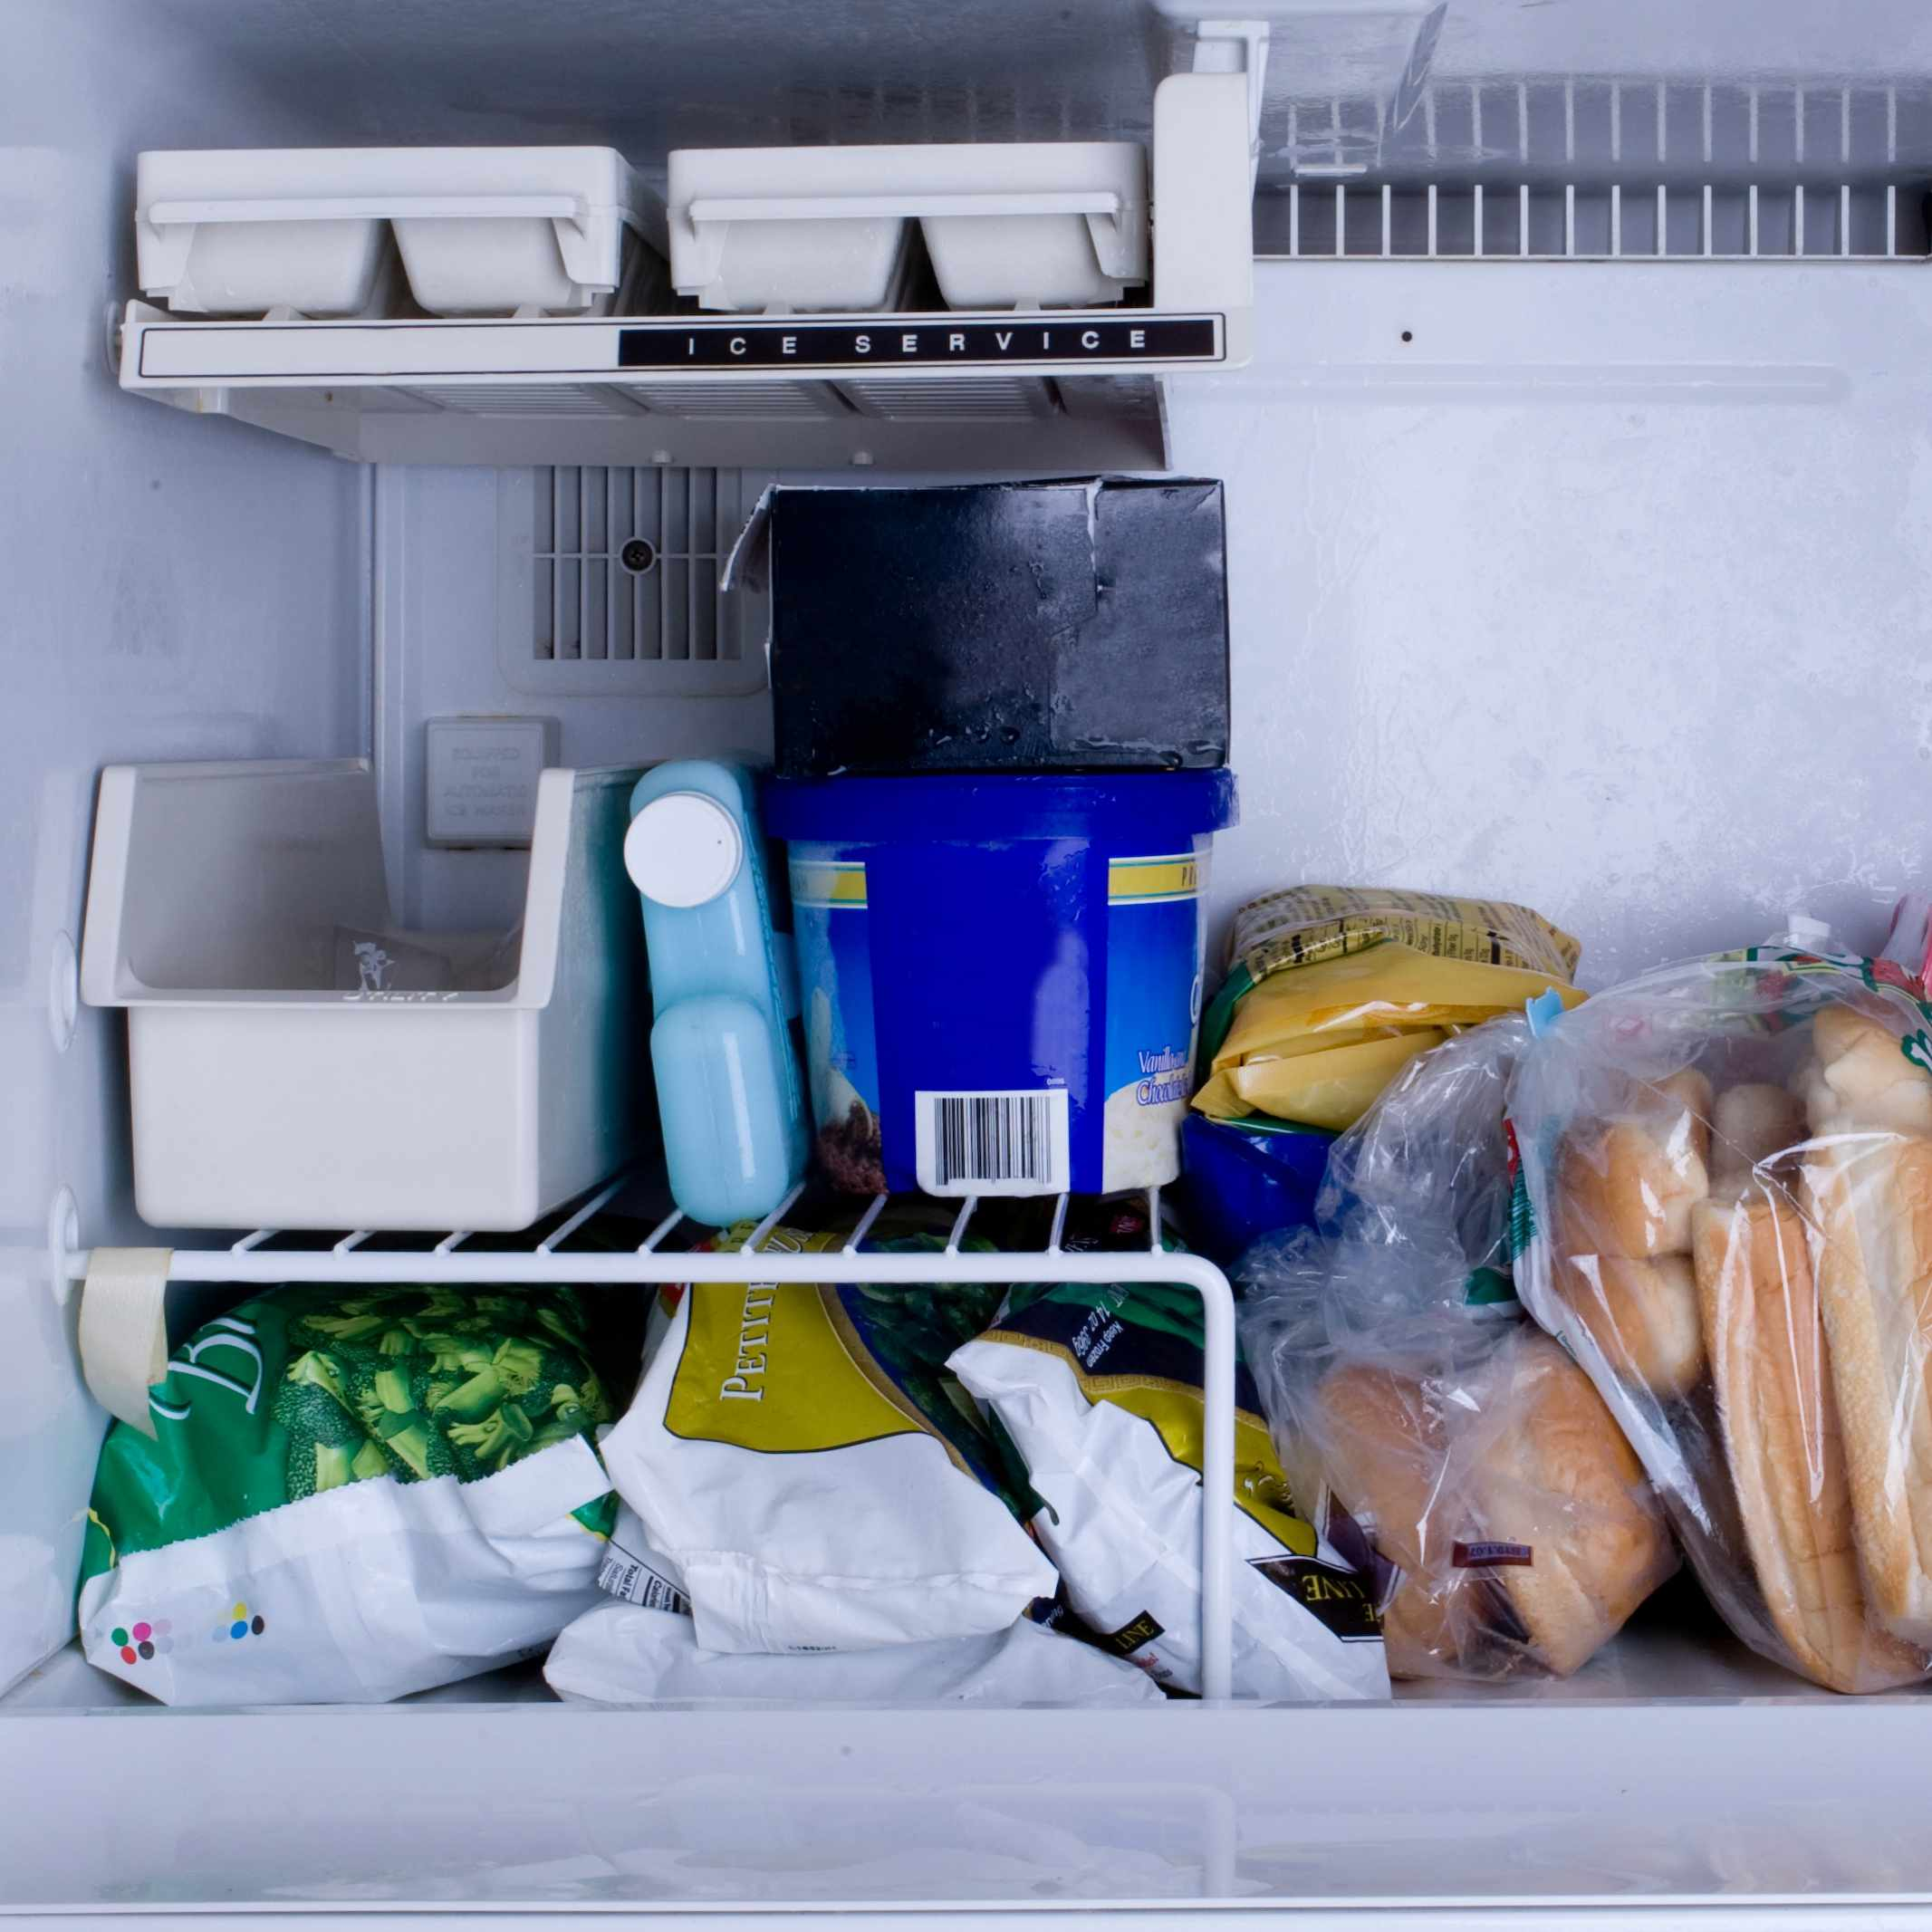 a refrigerator freezer with vegetables, packages of meat and ice cube trays